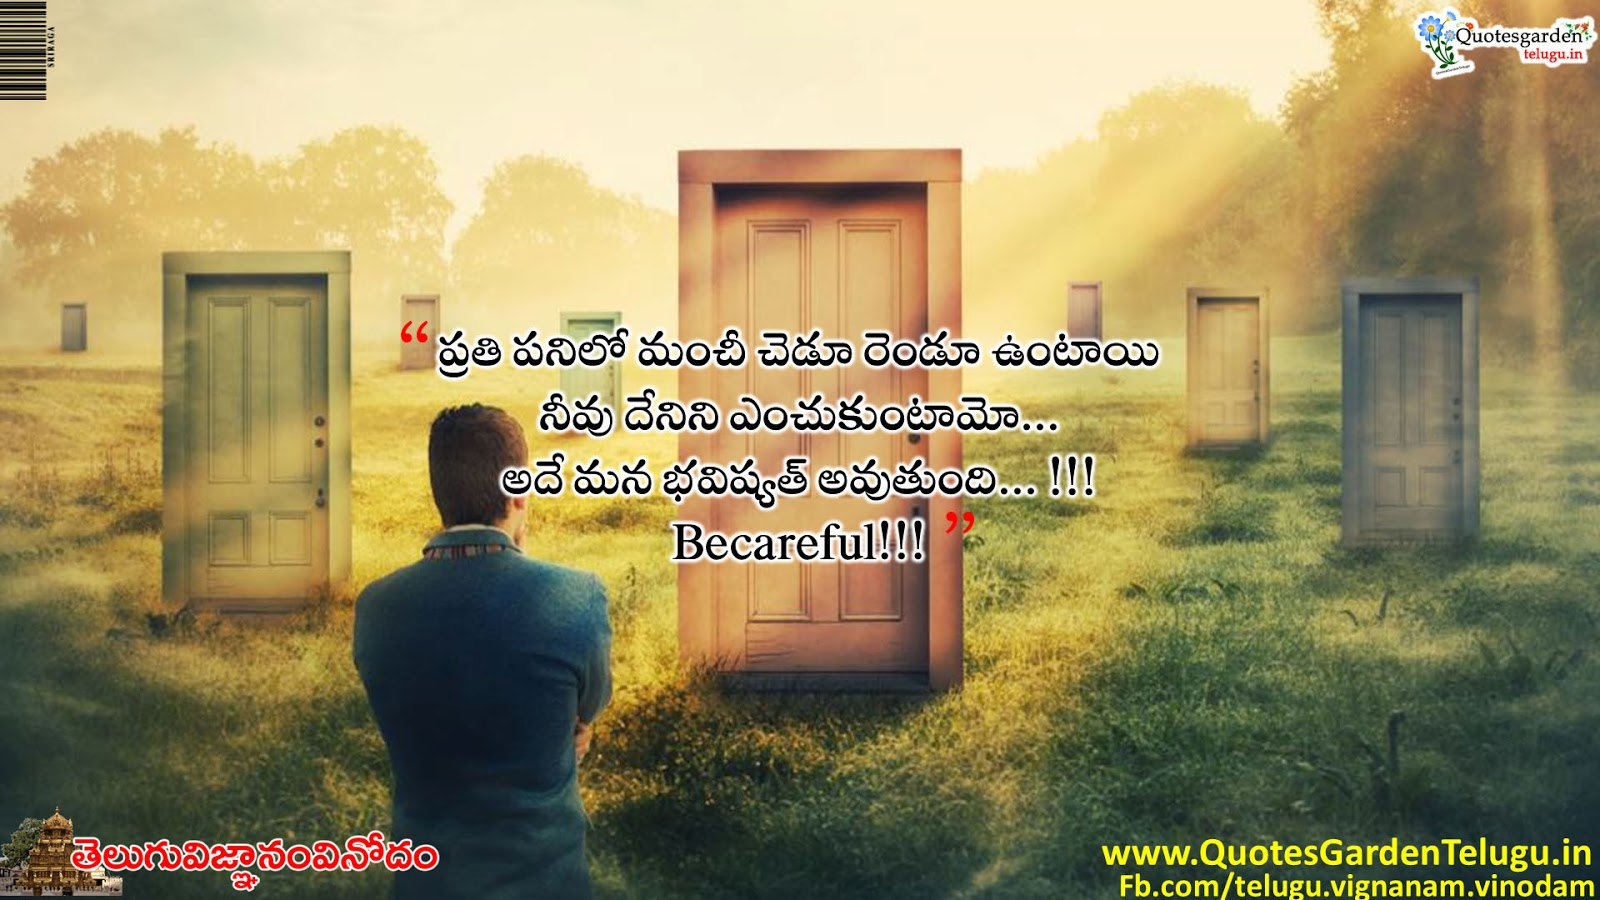 Inspirational quotes in telugu for students